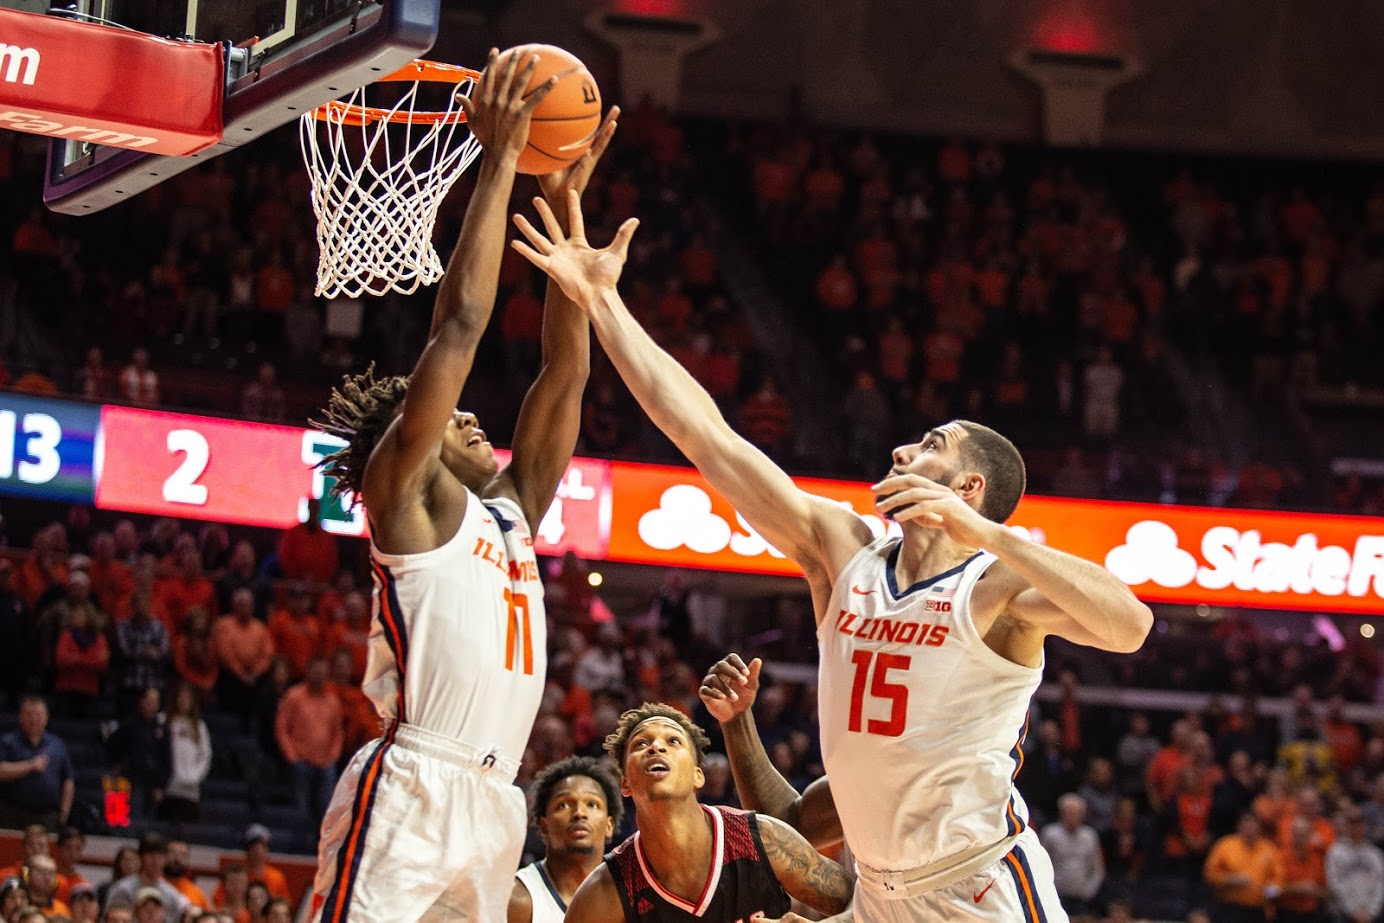 Giorgi Bezhanishvili and Ayo Dosunmu jump for an offensive rebound. Illinois faced Nicholls State at the State Farm Center on Nov. 5 and won 78-70.